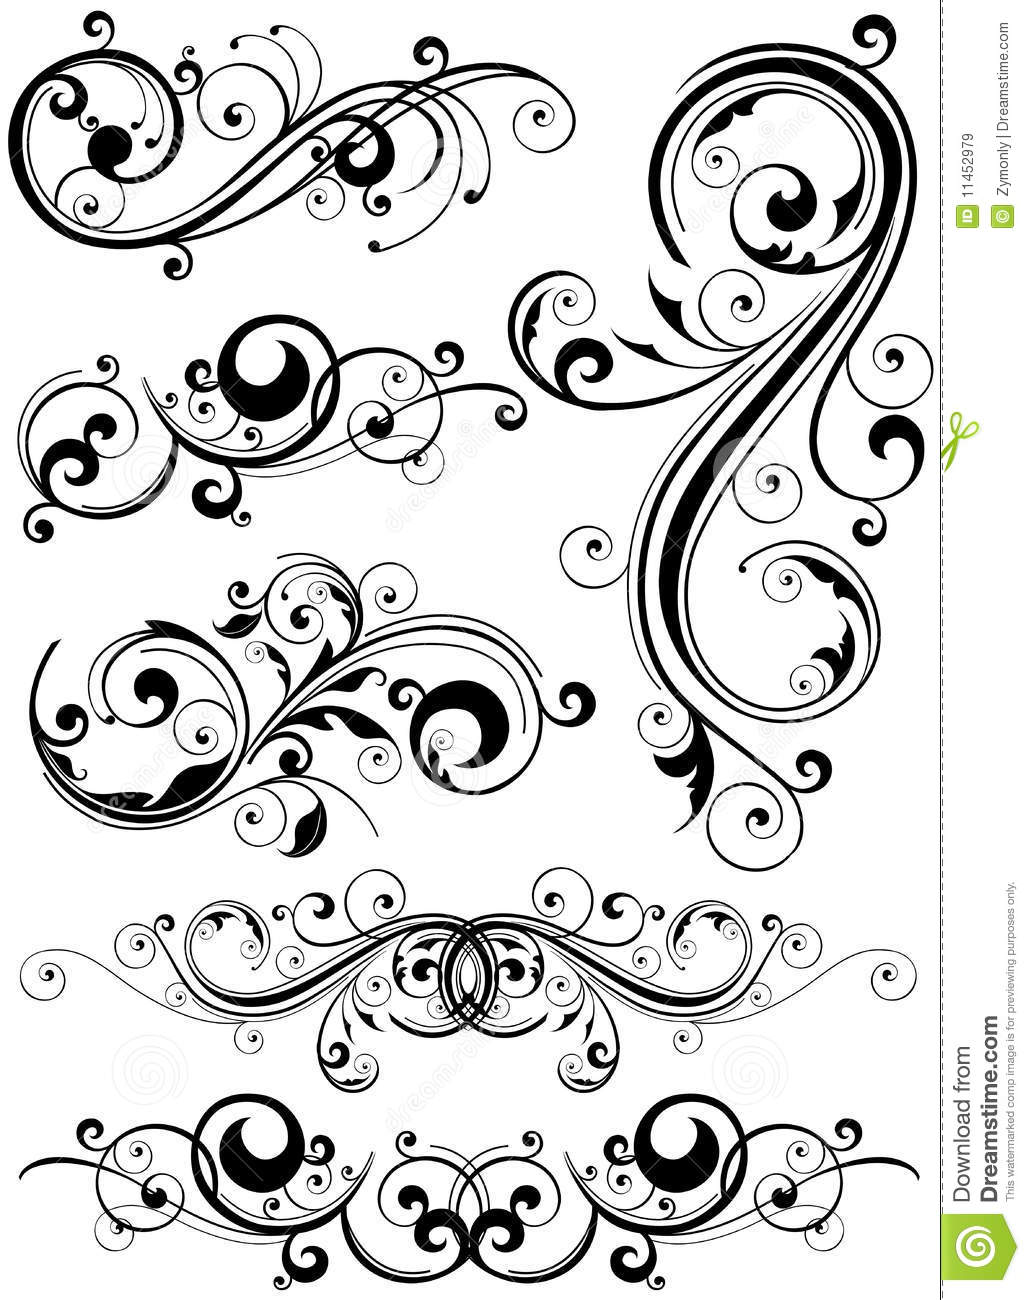 Elements By Design : Floral design elements royalty free stock images image